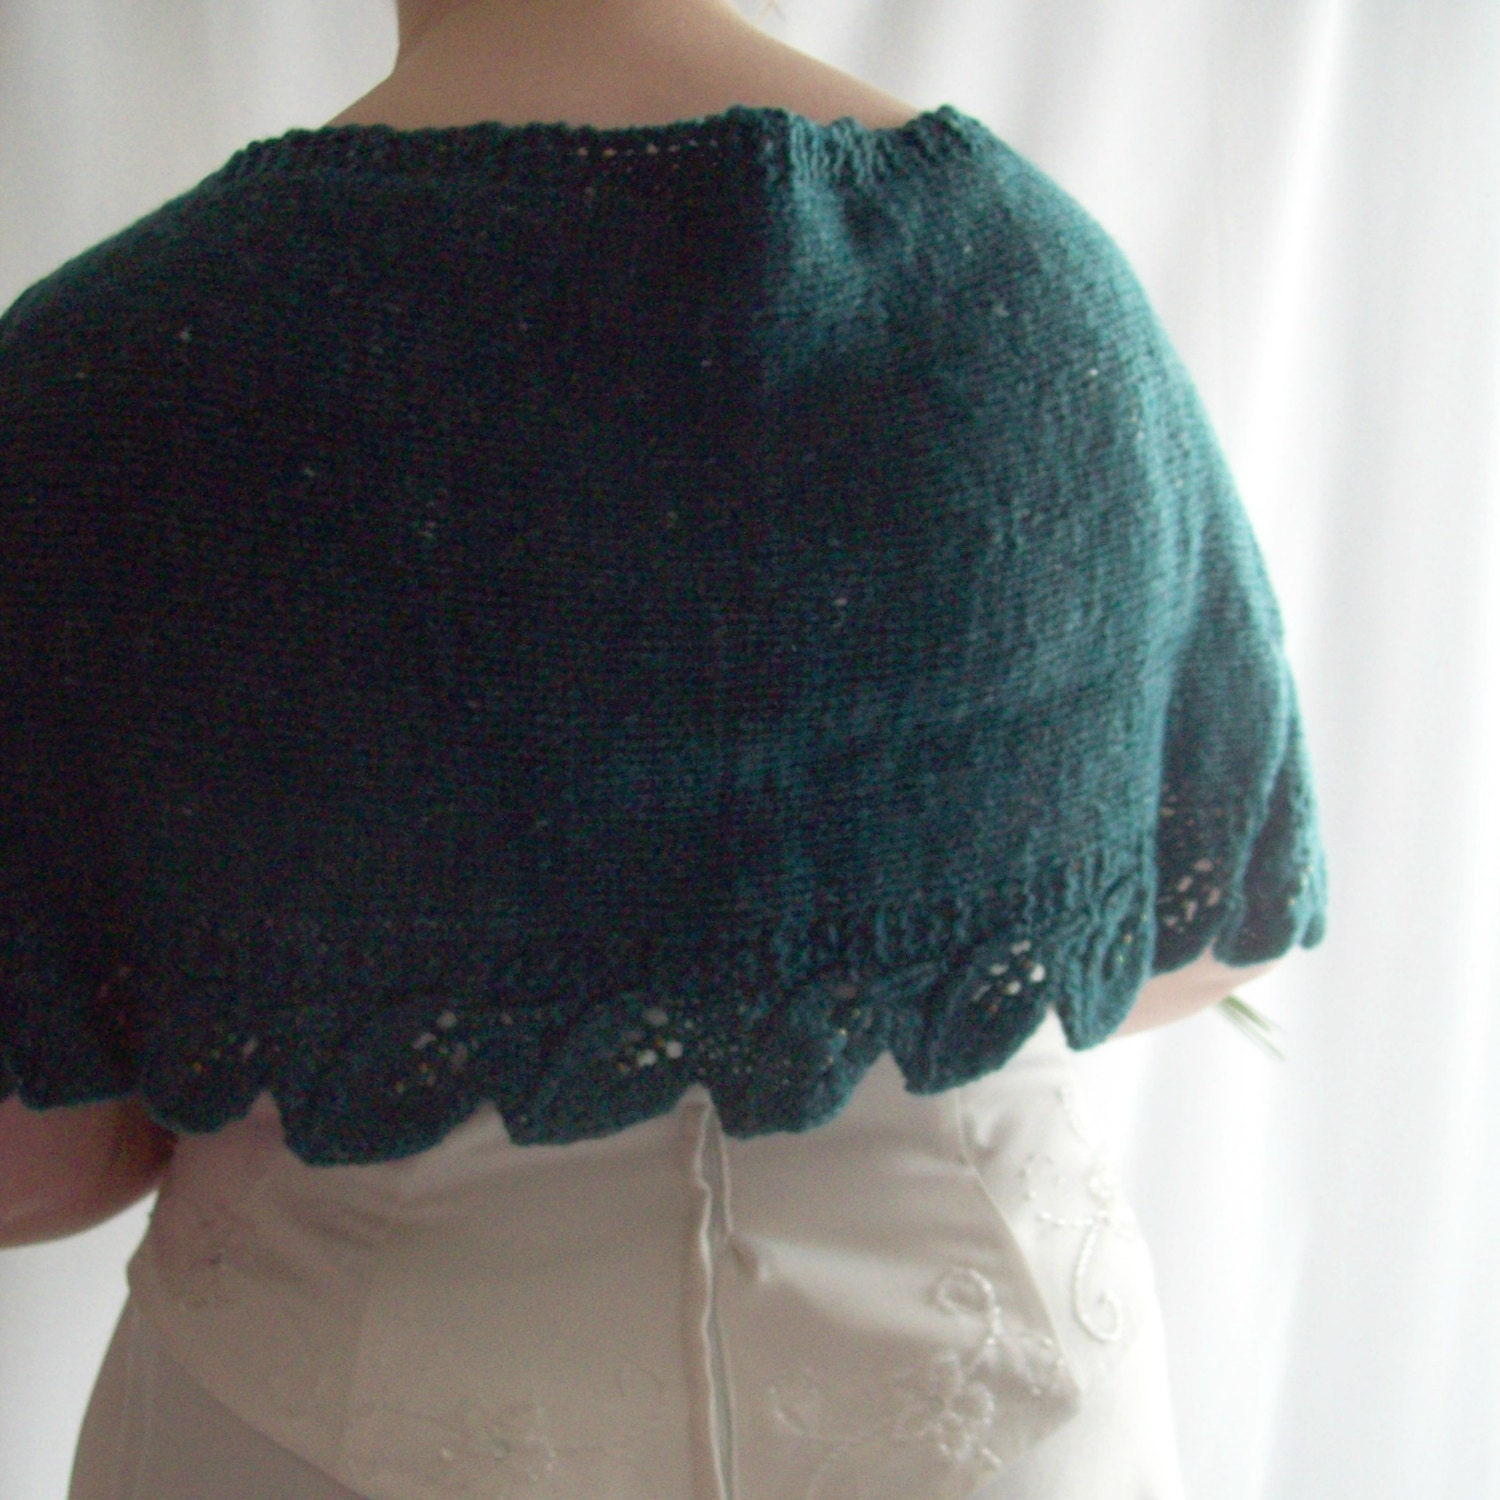 Knit Bridal Shawl Teal Wedding Knit Wool Shawl Beaded Shawl Knit Wrap Evening Shawl Evening Wrap Gift for Her Gift for Mum